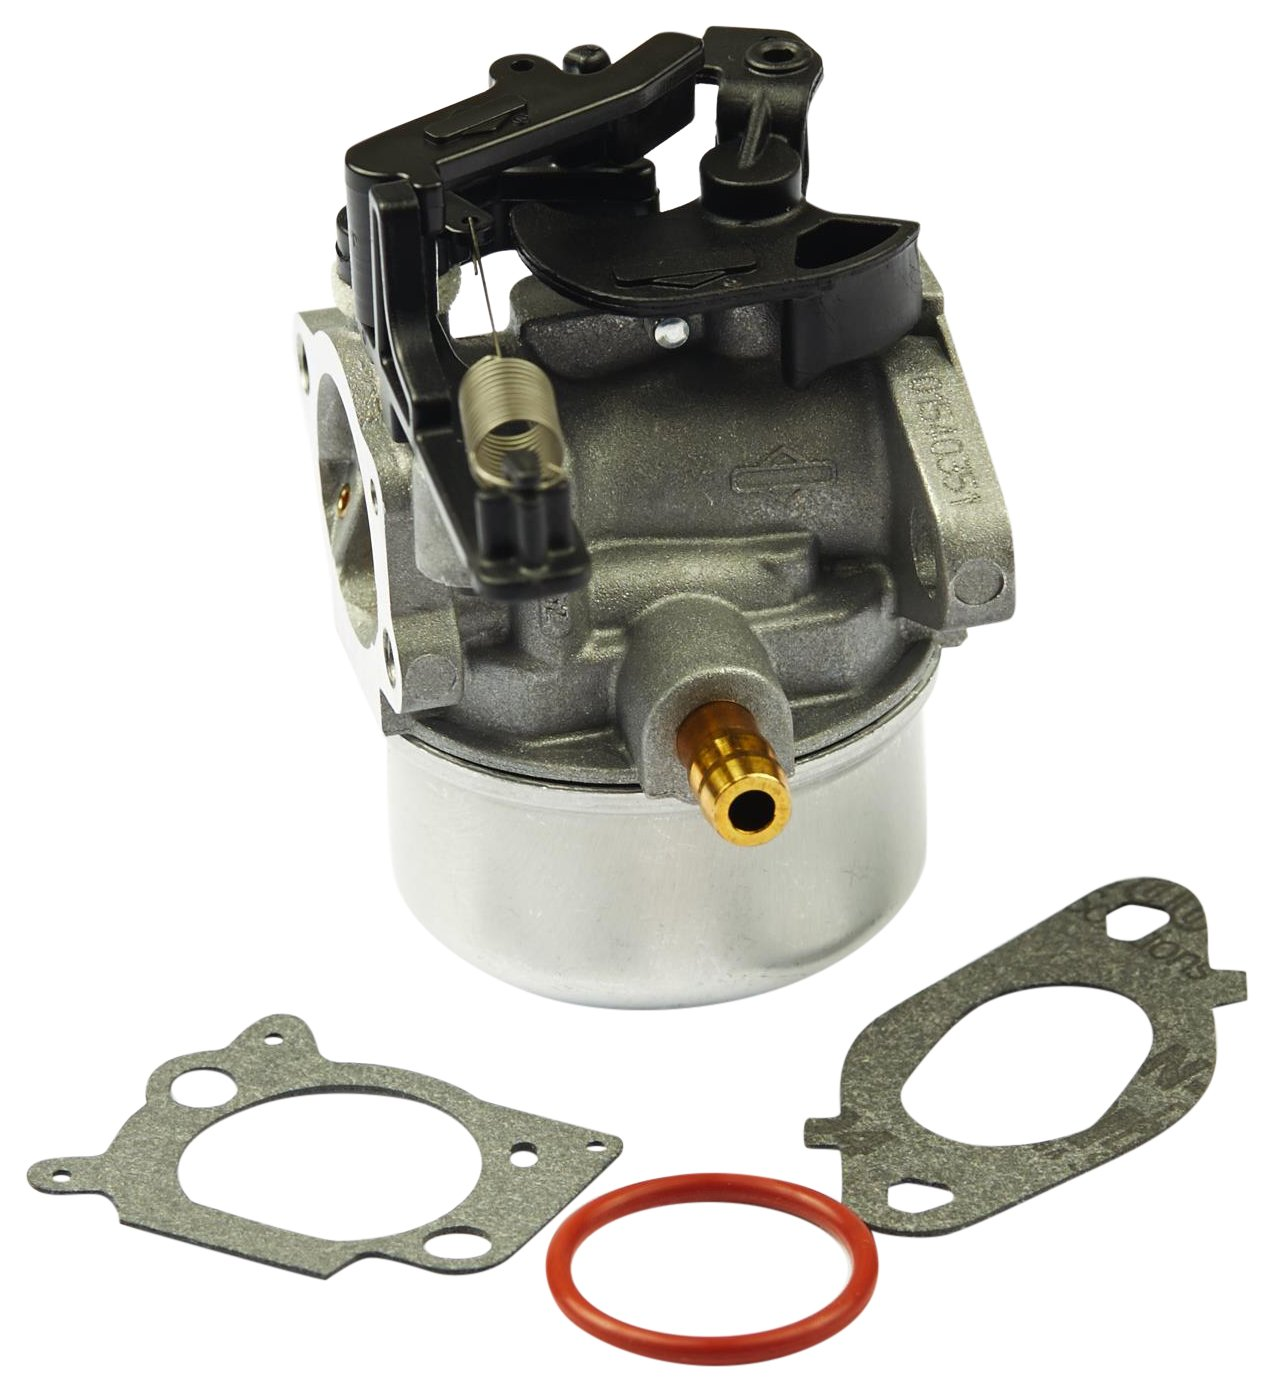 Briggs Stratton 591137 Carburetor Replaces 590948 And Engine Diagram Parts List For Lawn Garden Tool Replacement Outdoor